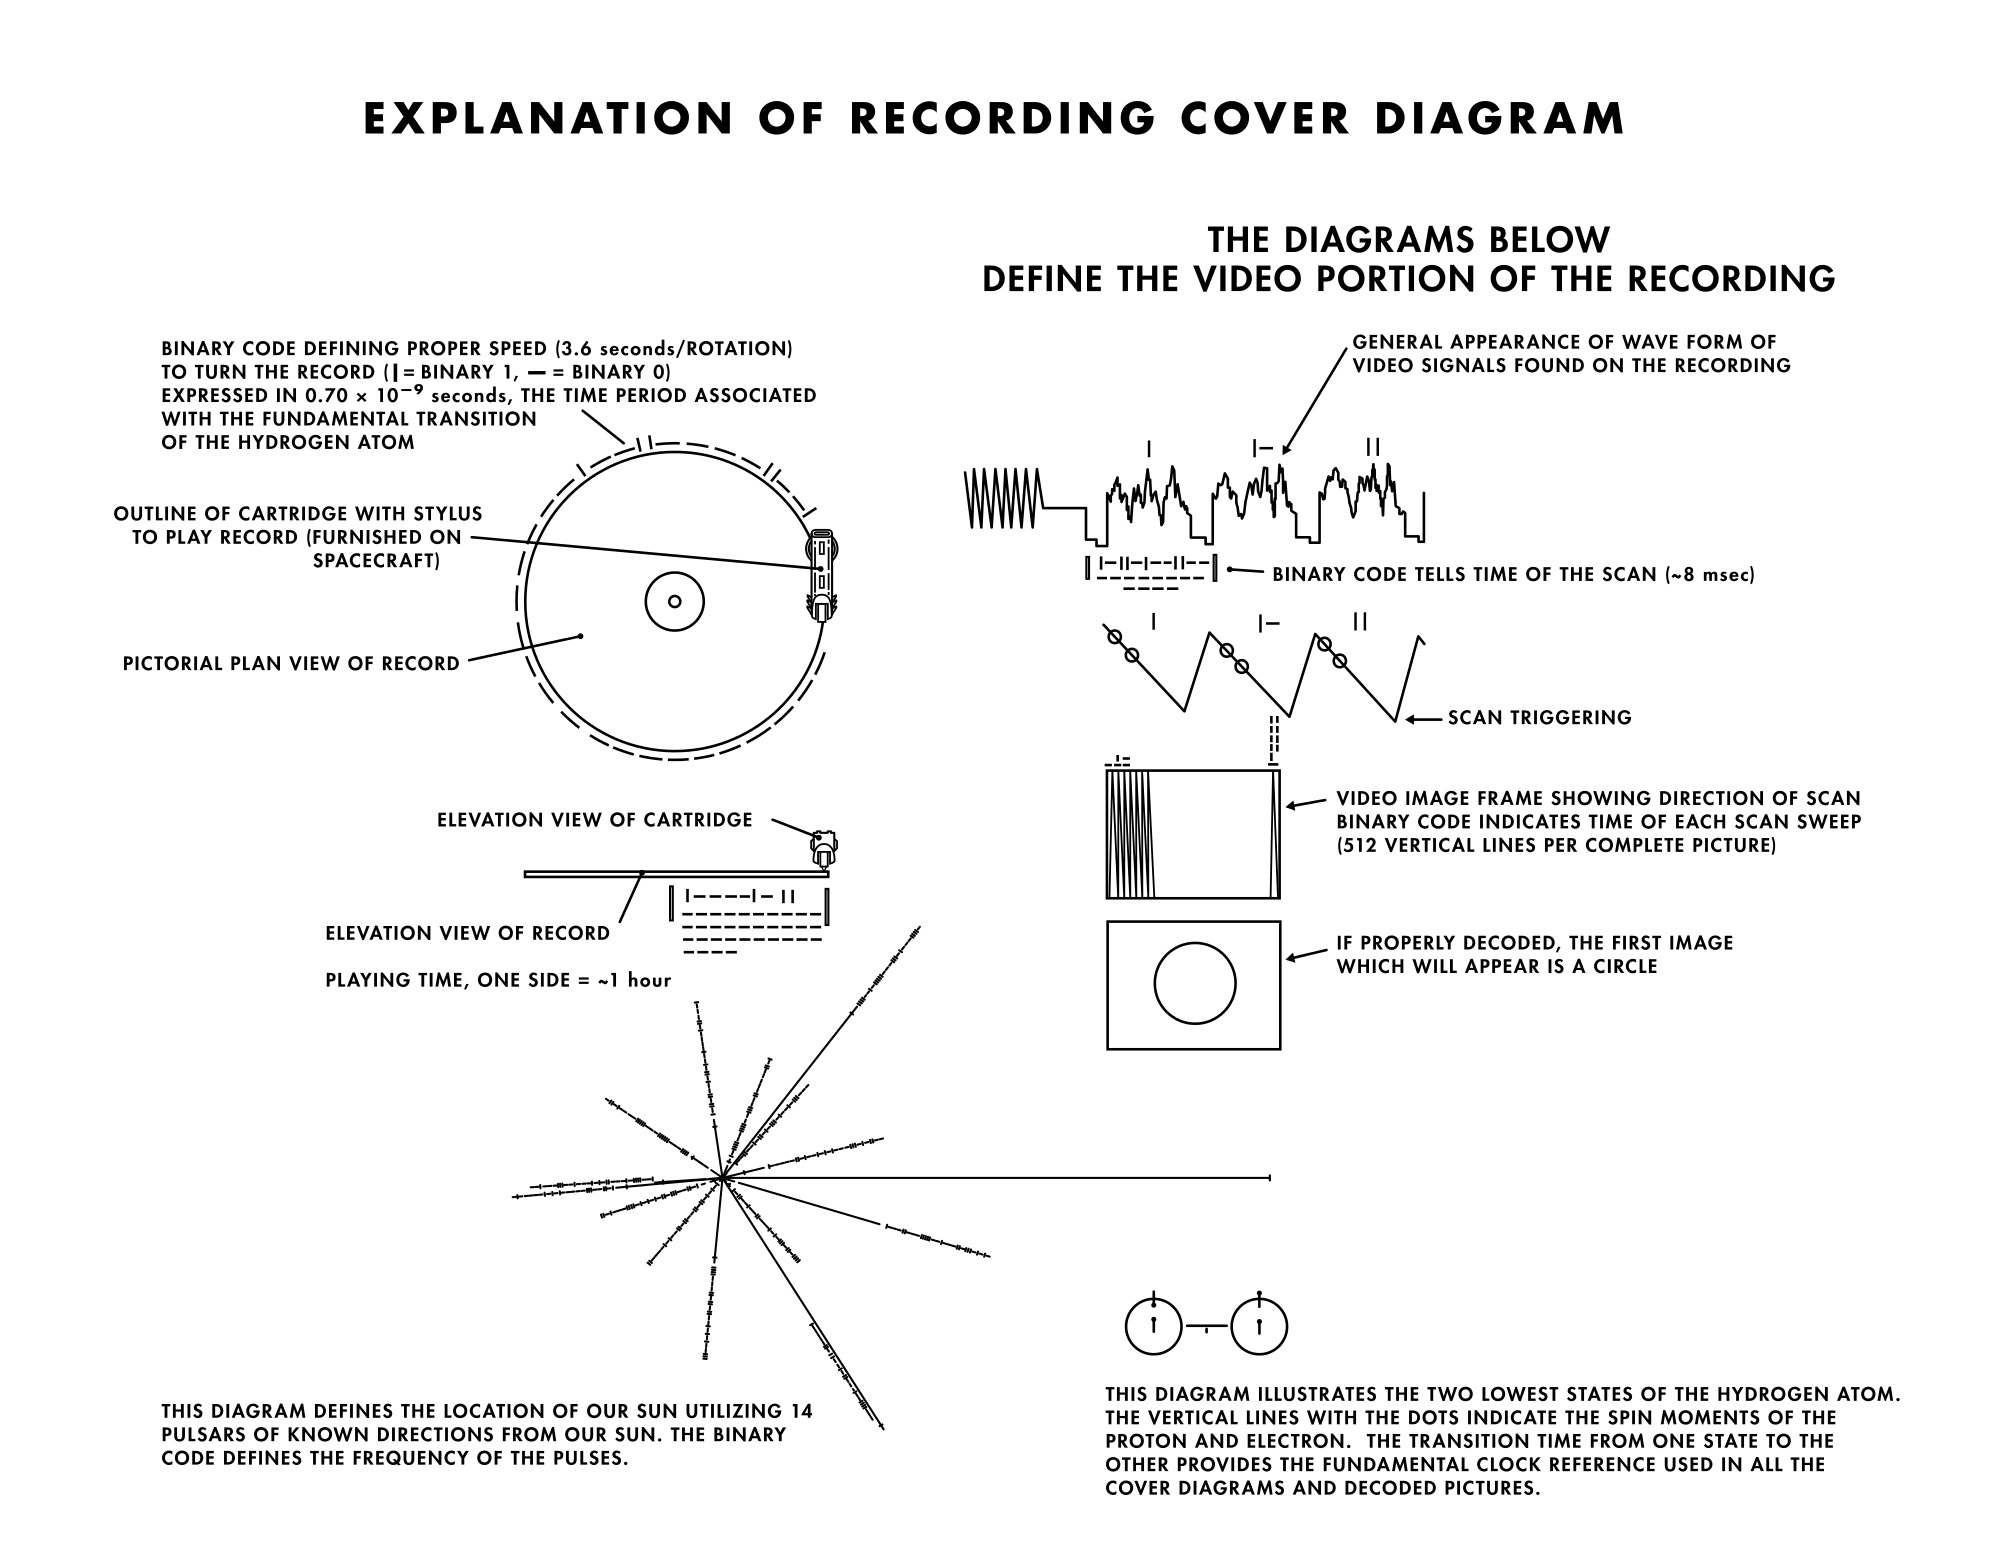 voyager 2 plaque diagram - photo #43